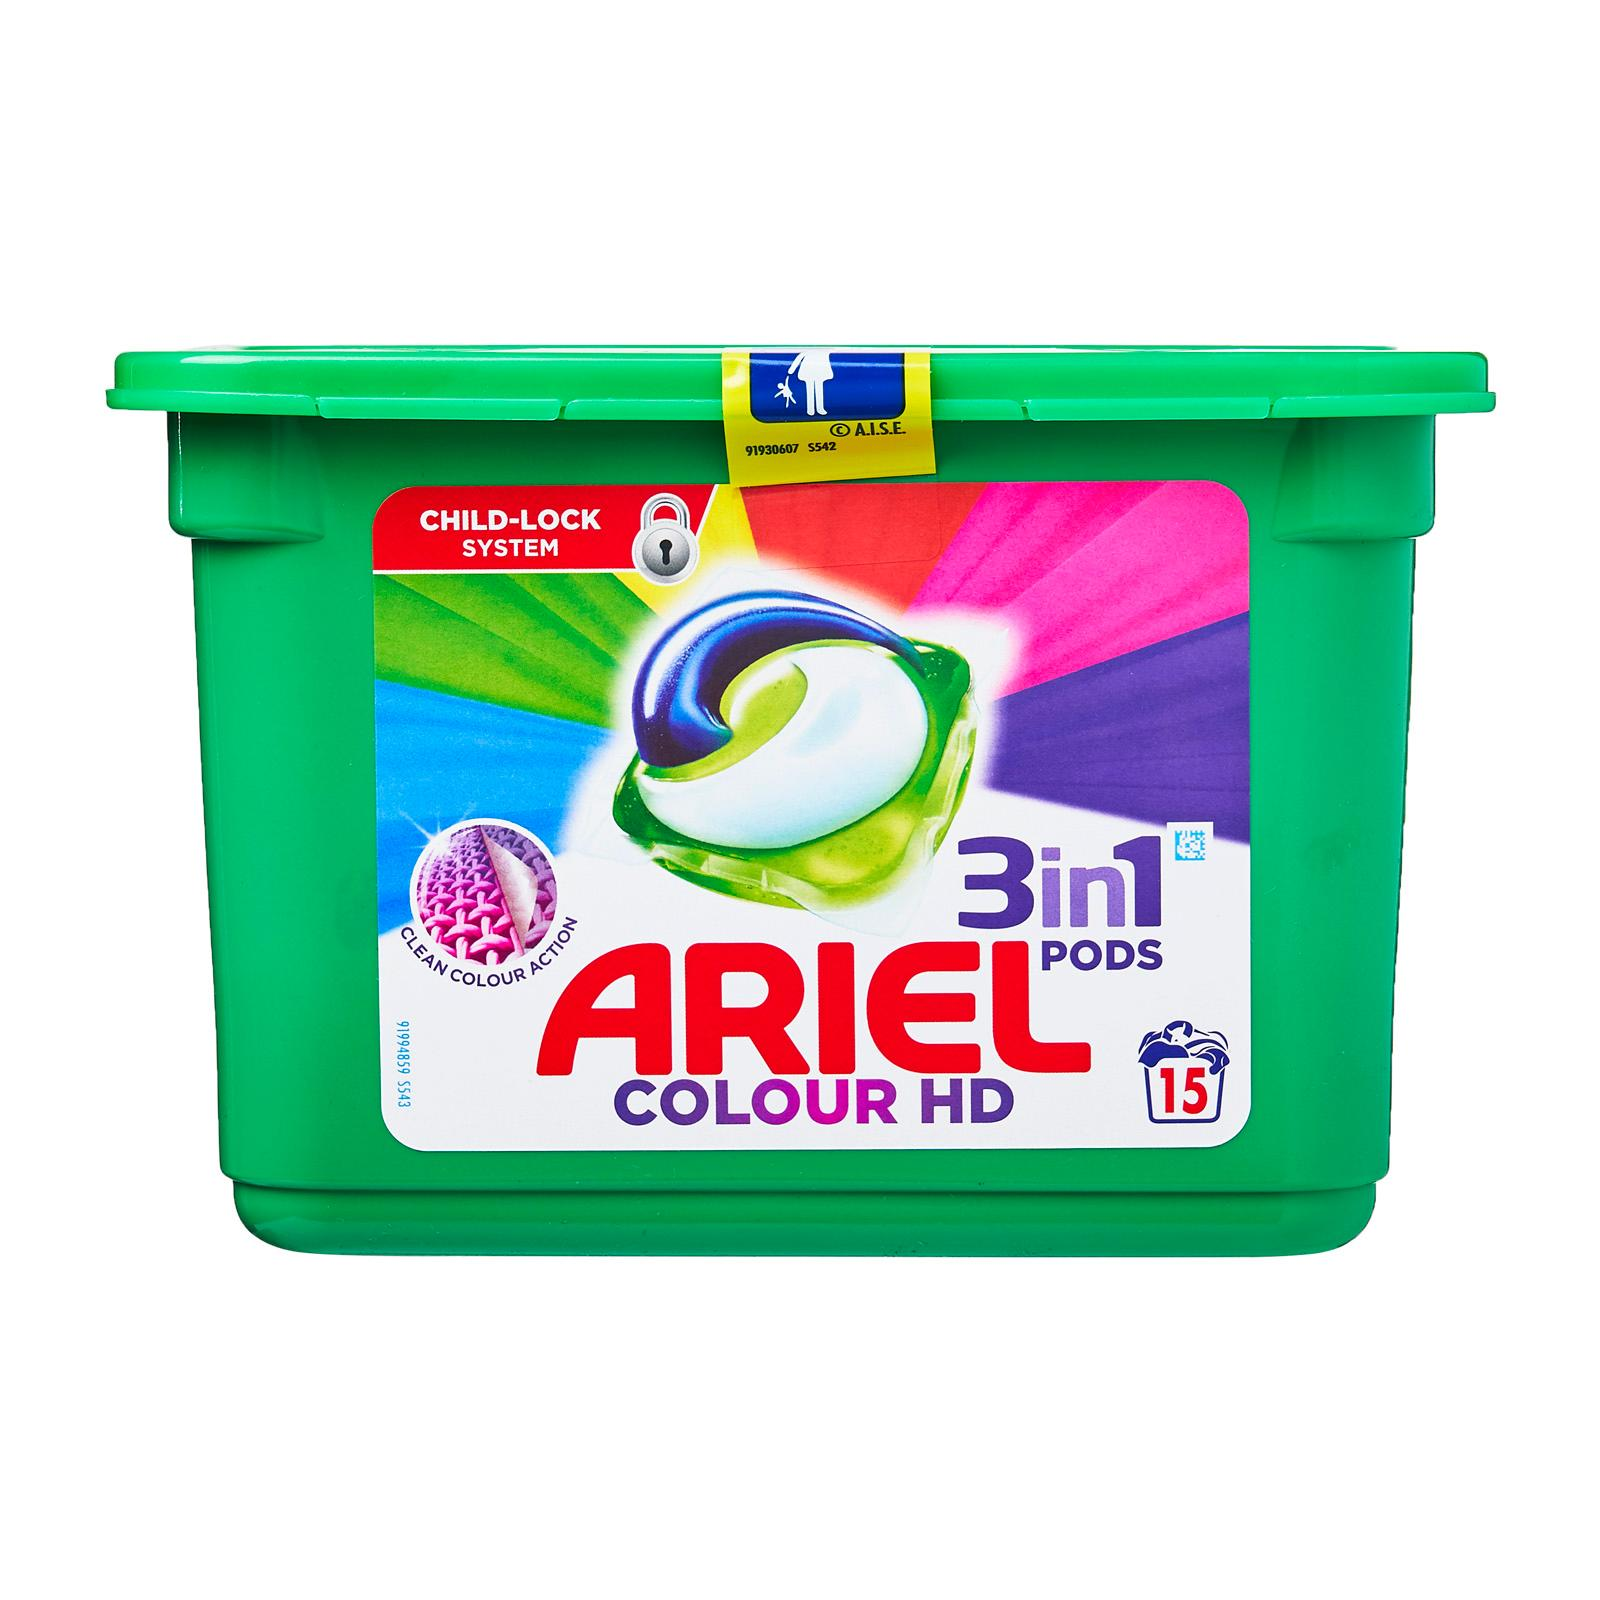 Ariel Original All in 1 Pods Washing Liquid Capsules - 15 Washes